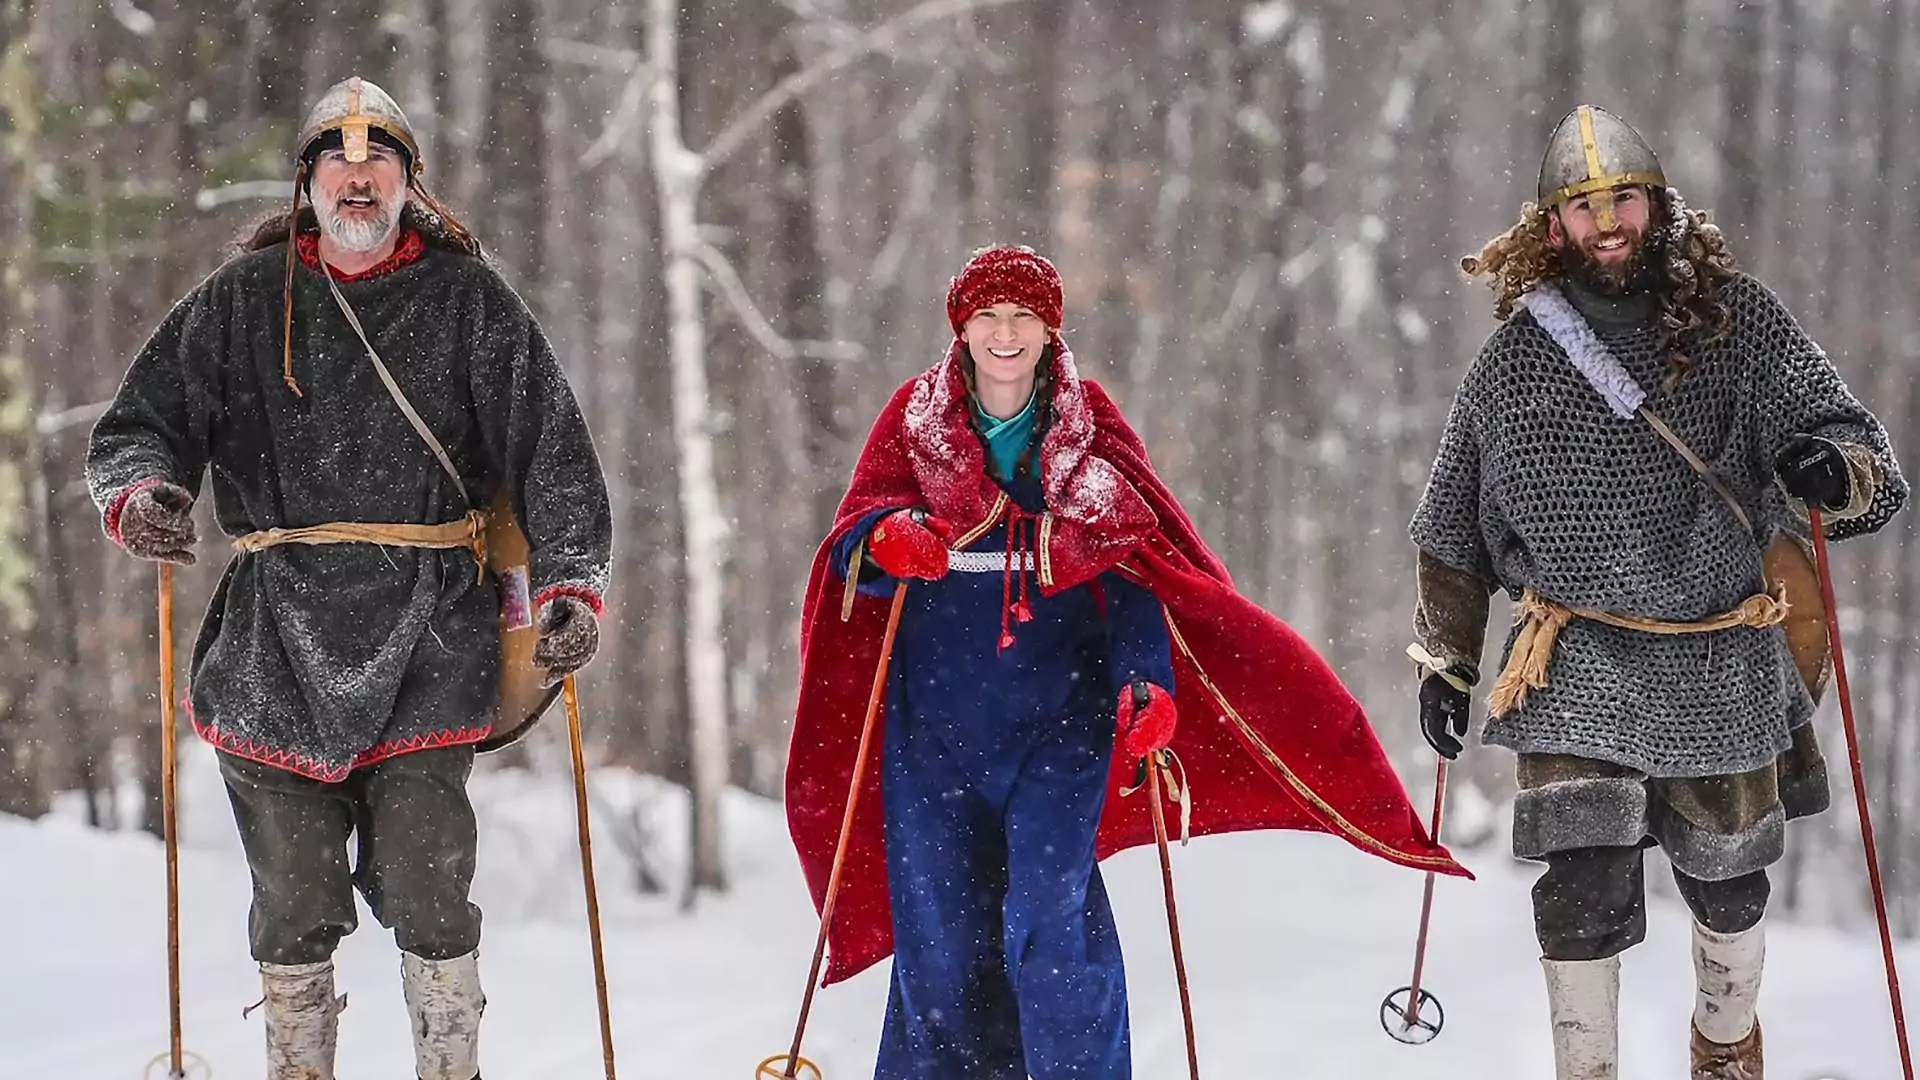 Three people in Nordic dress walk through a snowy forest.